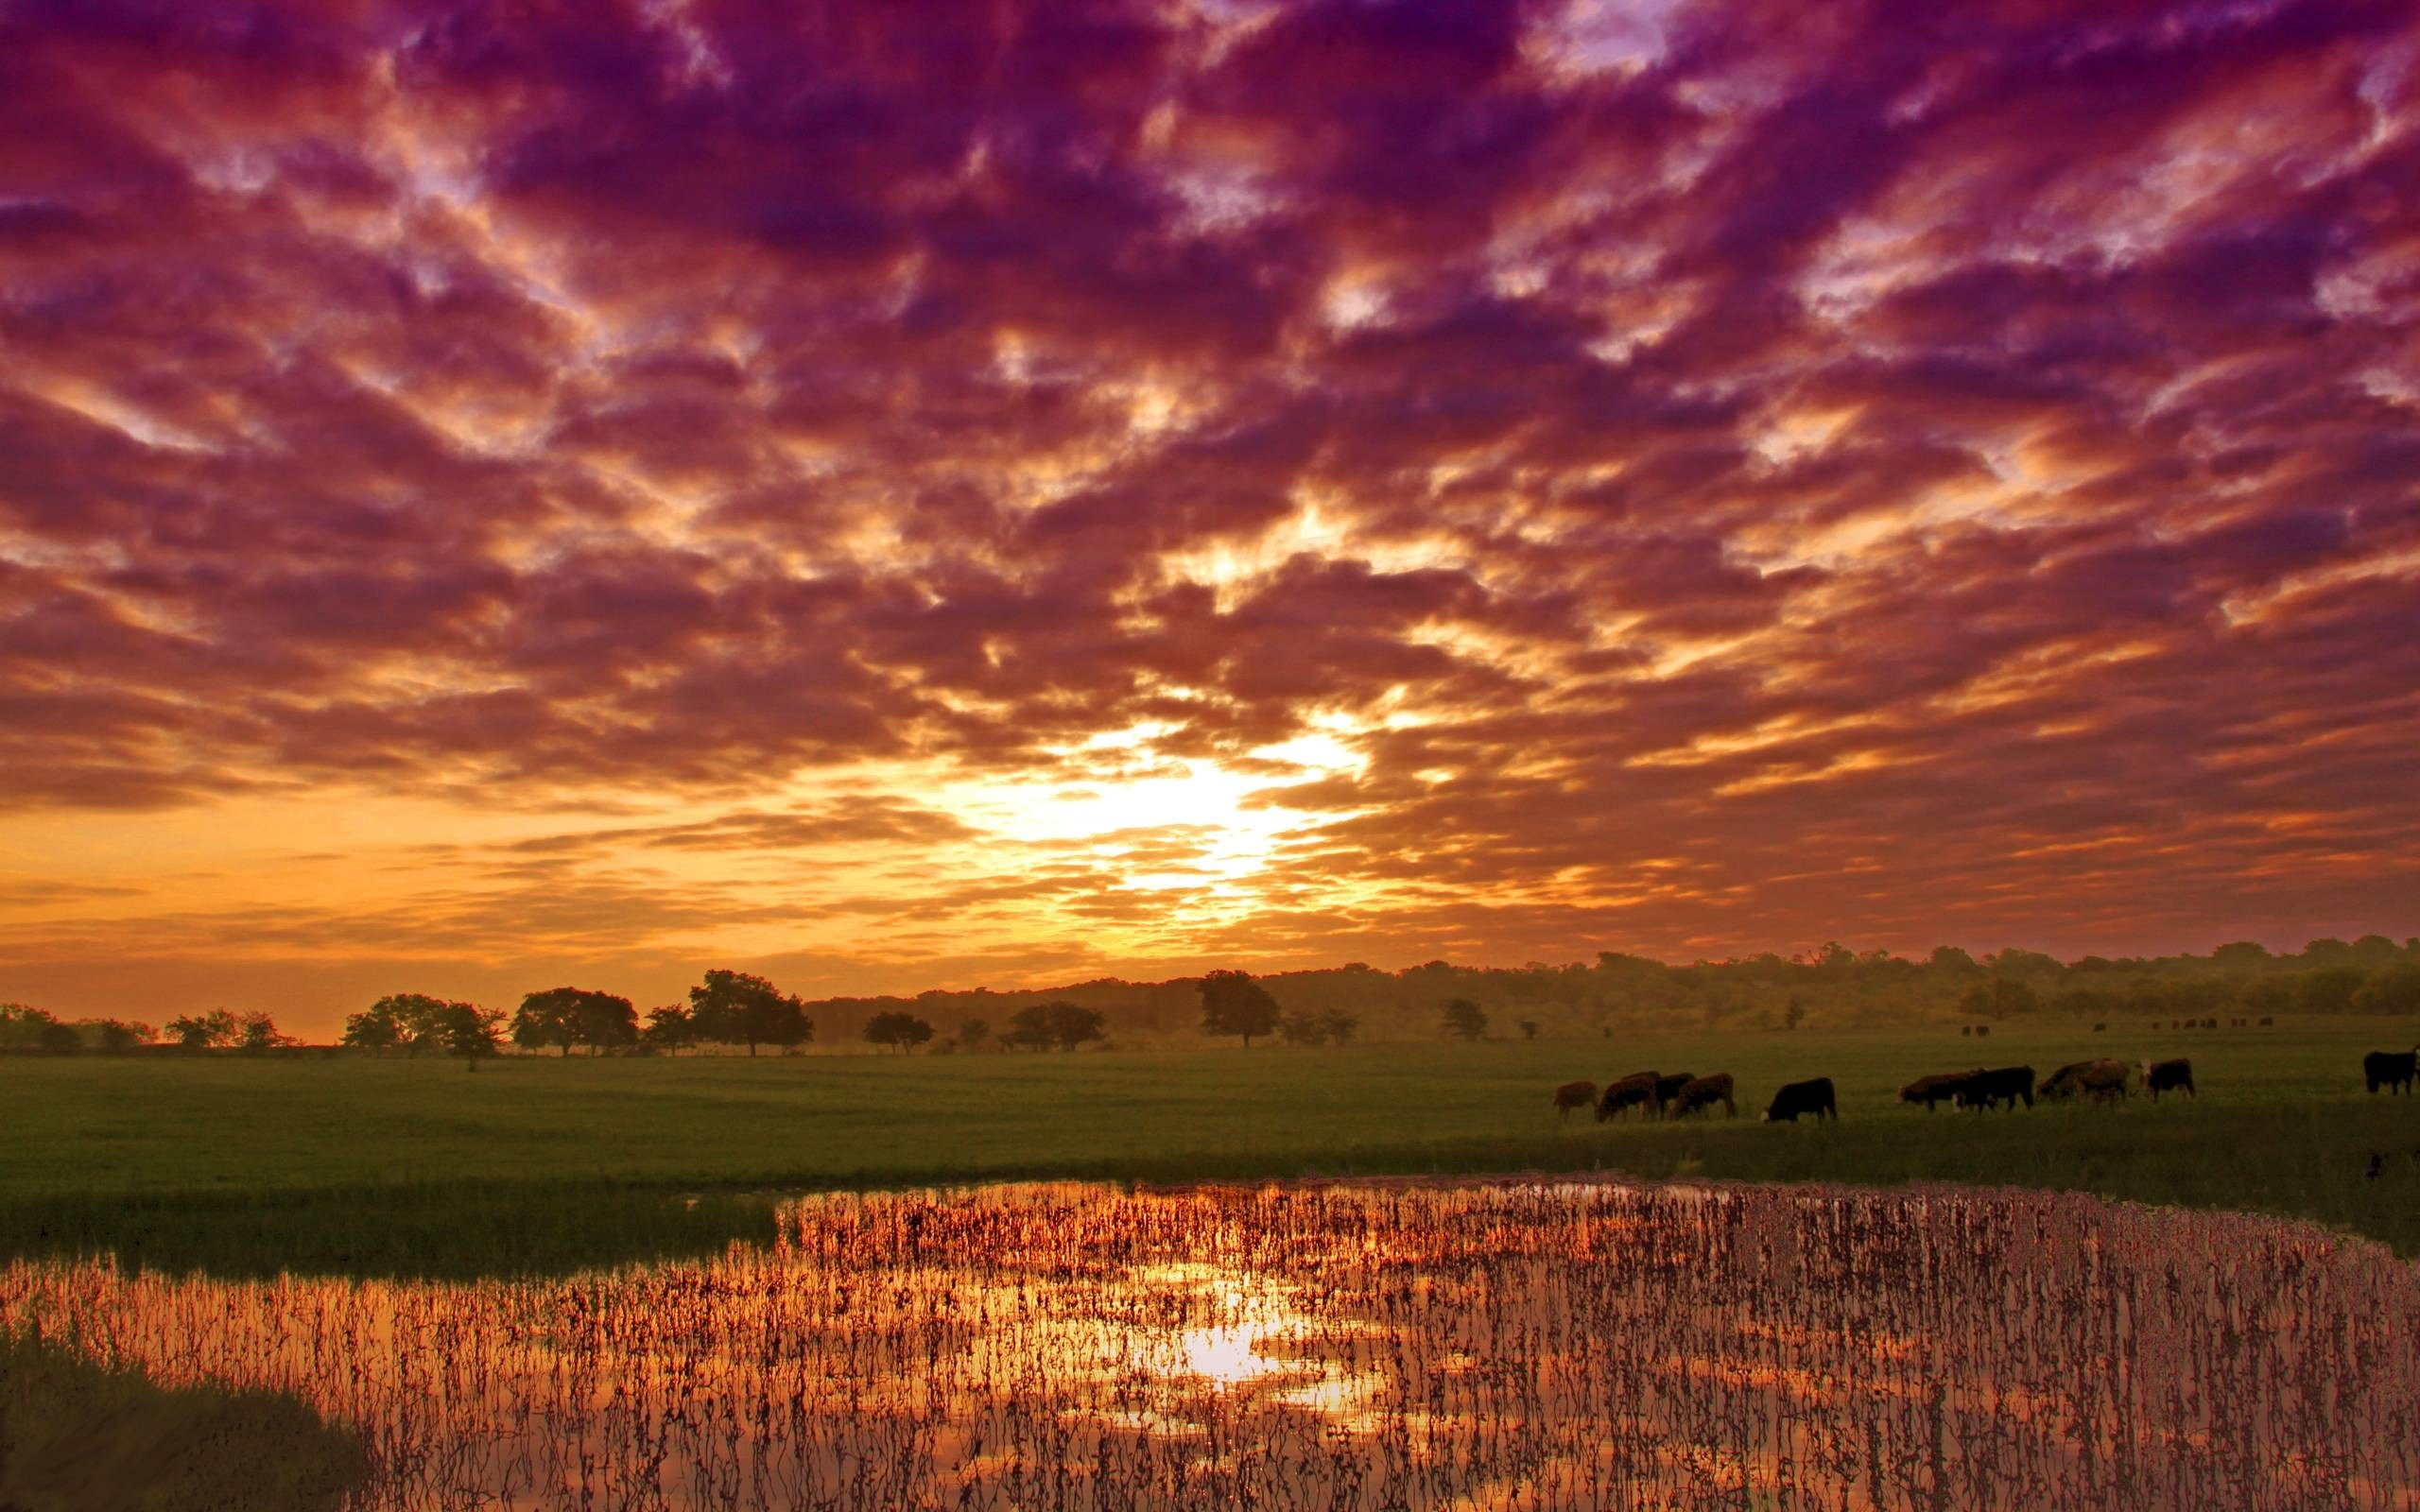 Free Clouds of Purple and Orange Wallpapers, Free Clouds of Purple .